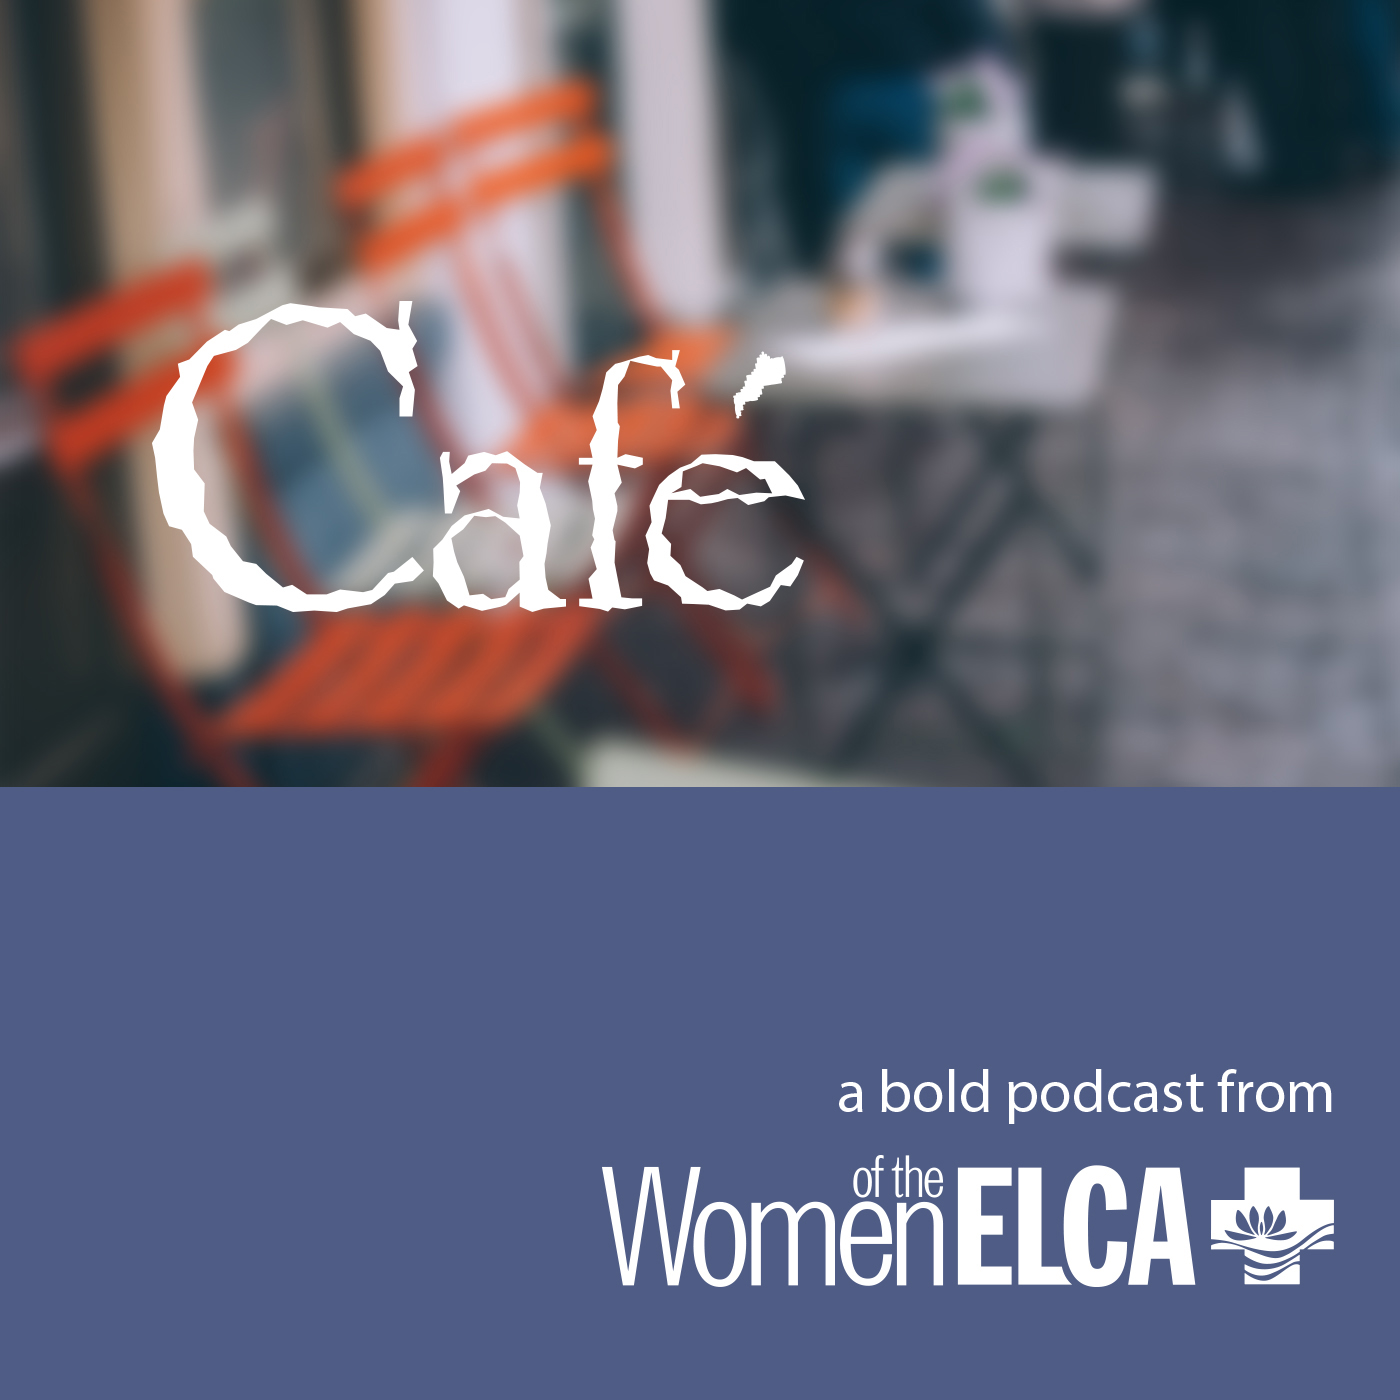 Boldcafe Podcast - Boldcafe is hosted by Elizabeth McBride and features progressive Christian ideas with Lutheran theology. Monthly articles written by young women of faith for younger audiences are featured on the website. Topics range from relationships, vocation, work-life issues, and more for young adult women.